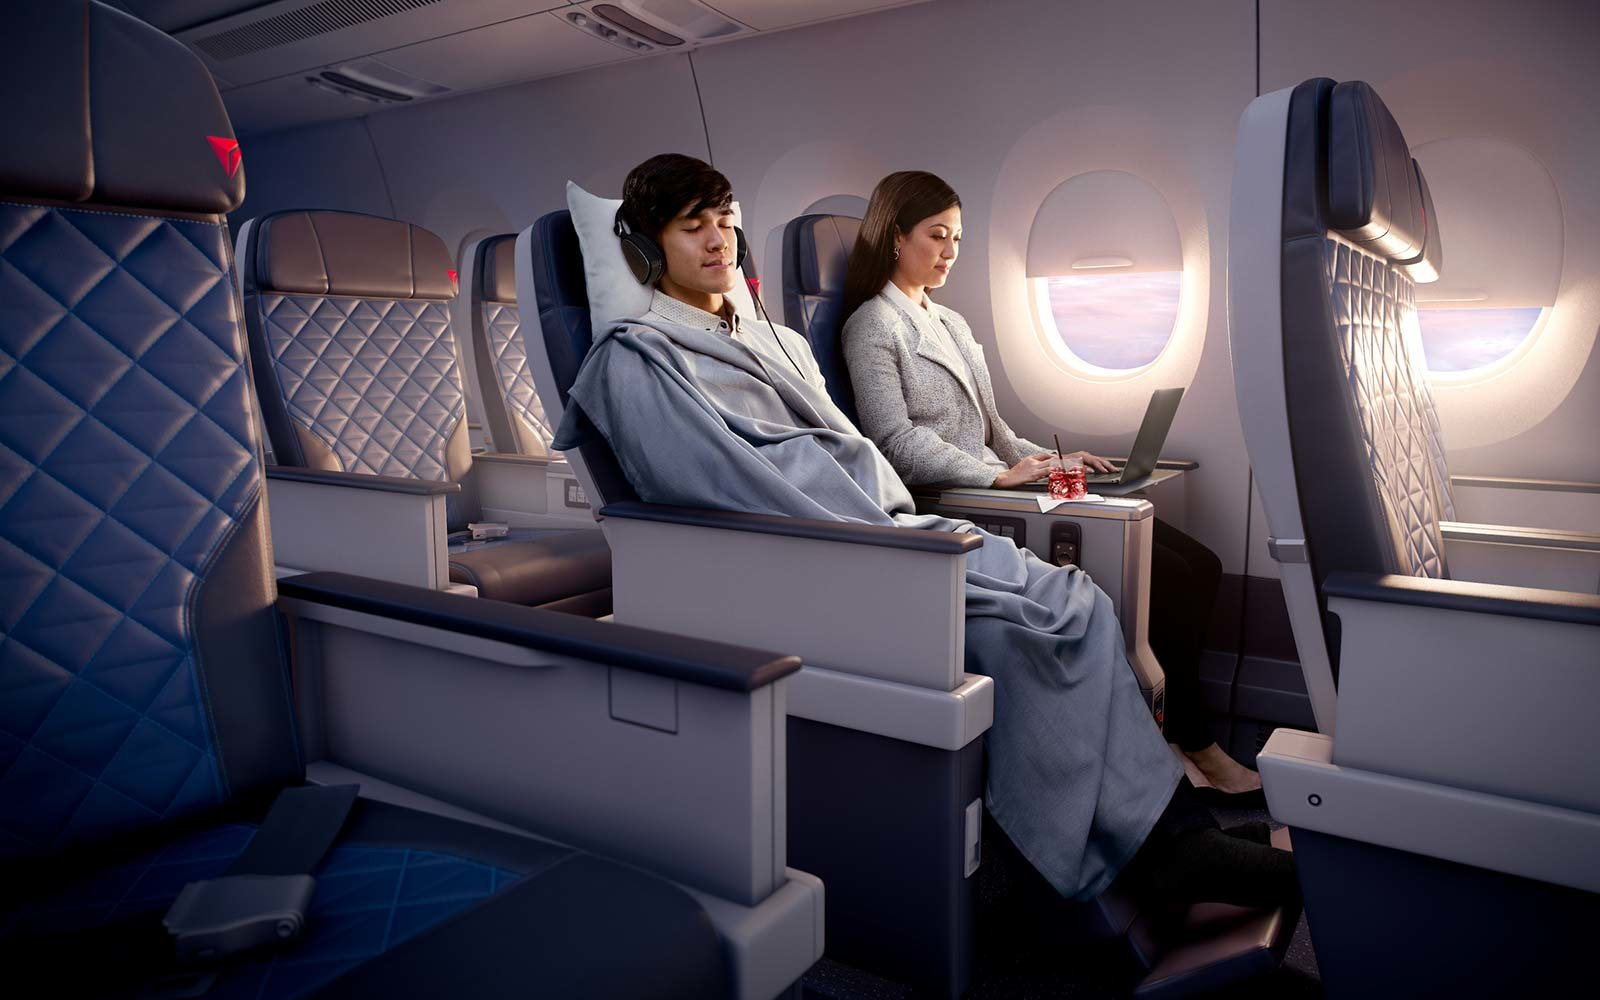 Delta Airlines Airbus A350 The Delta Premium cabin was designed with comfort in mind on Delta's longest flights